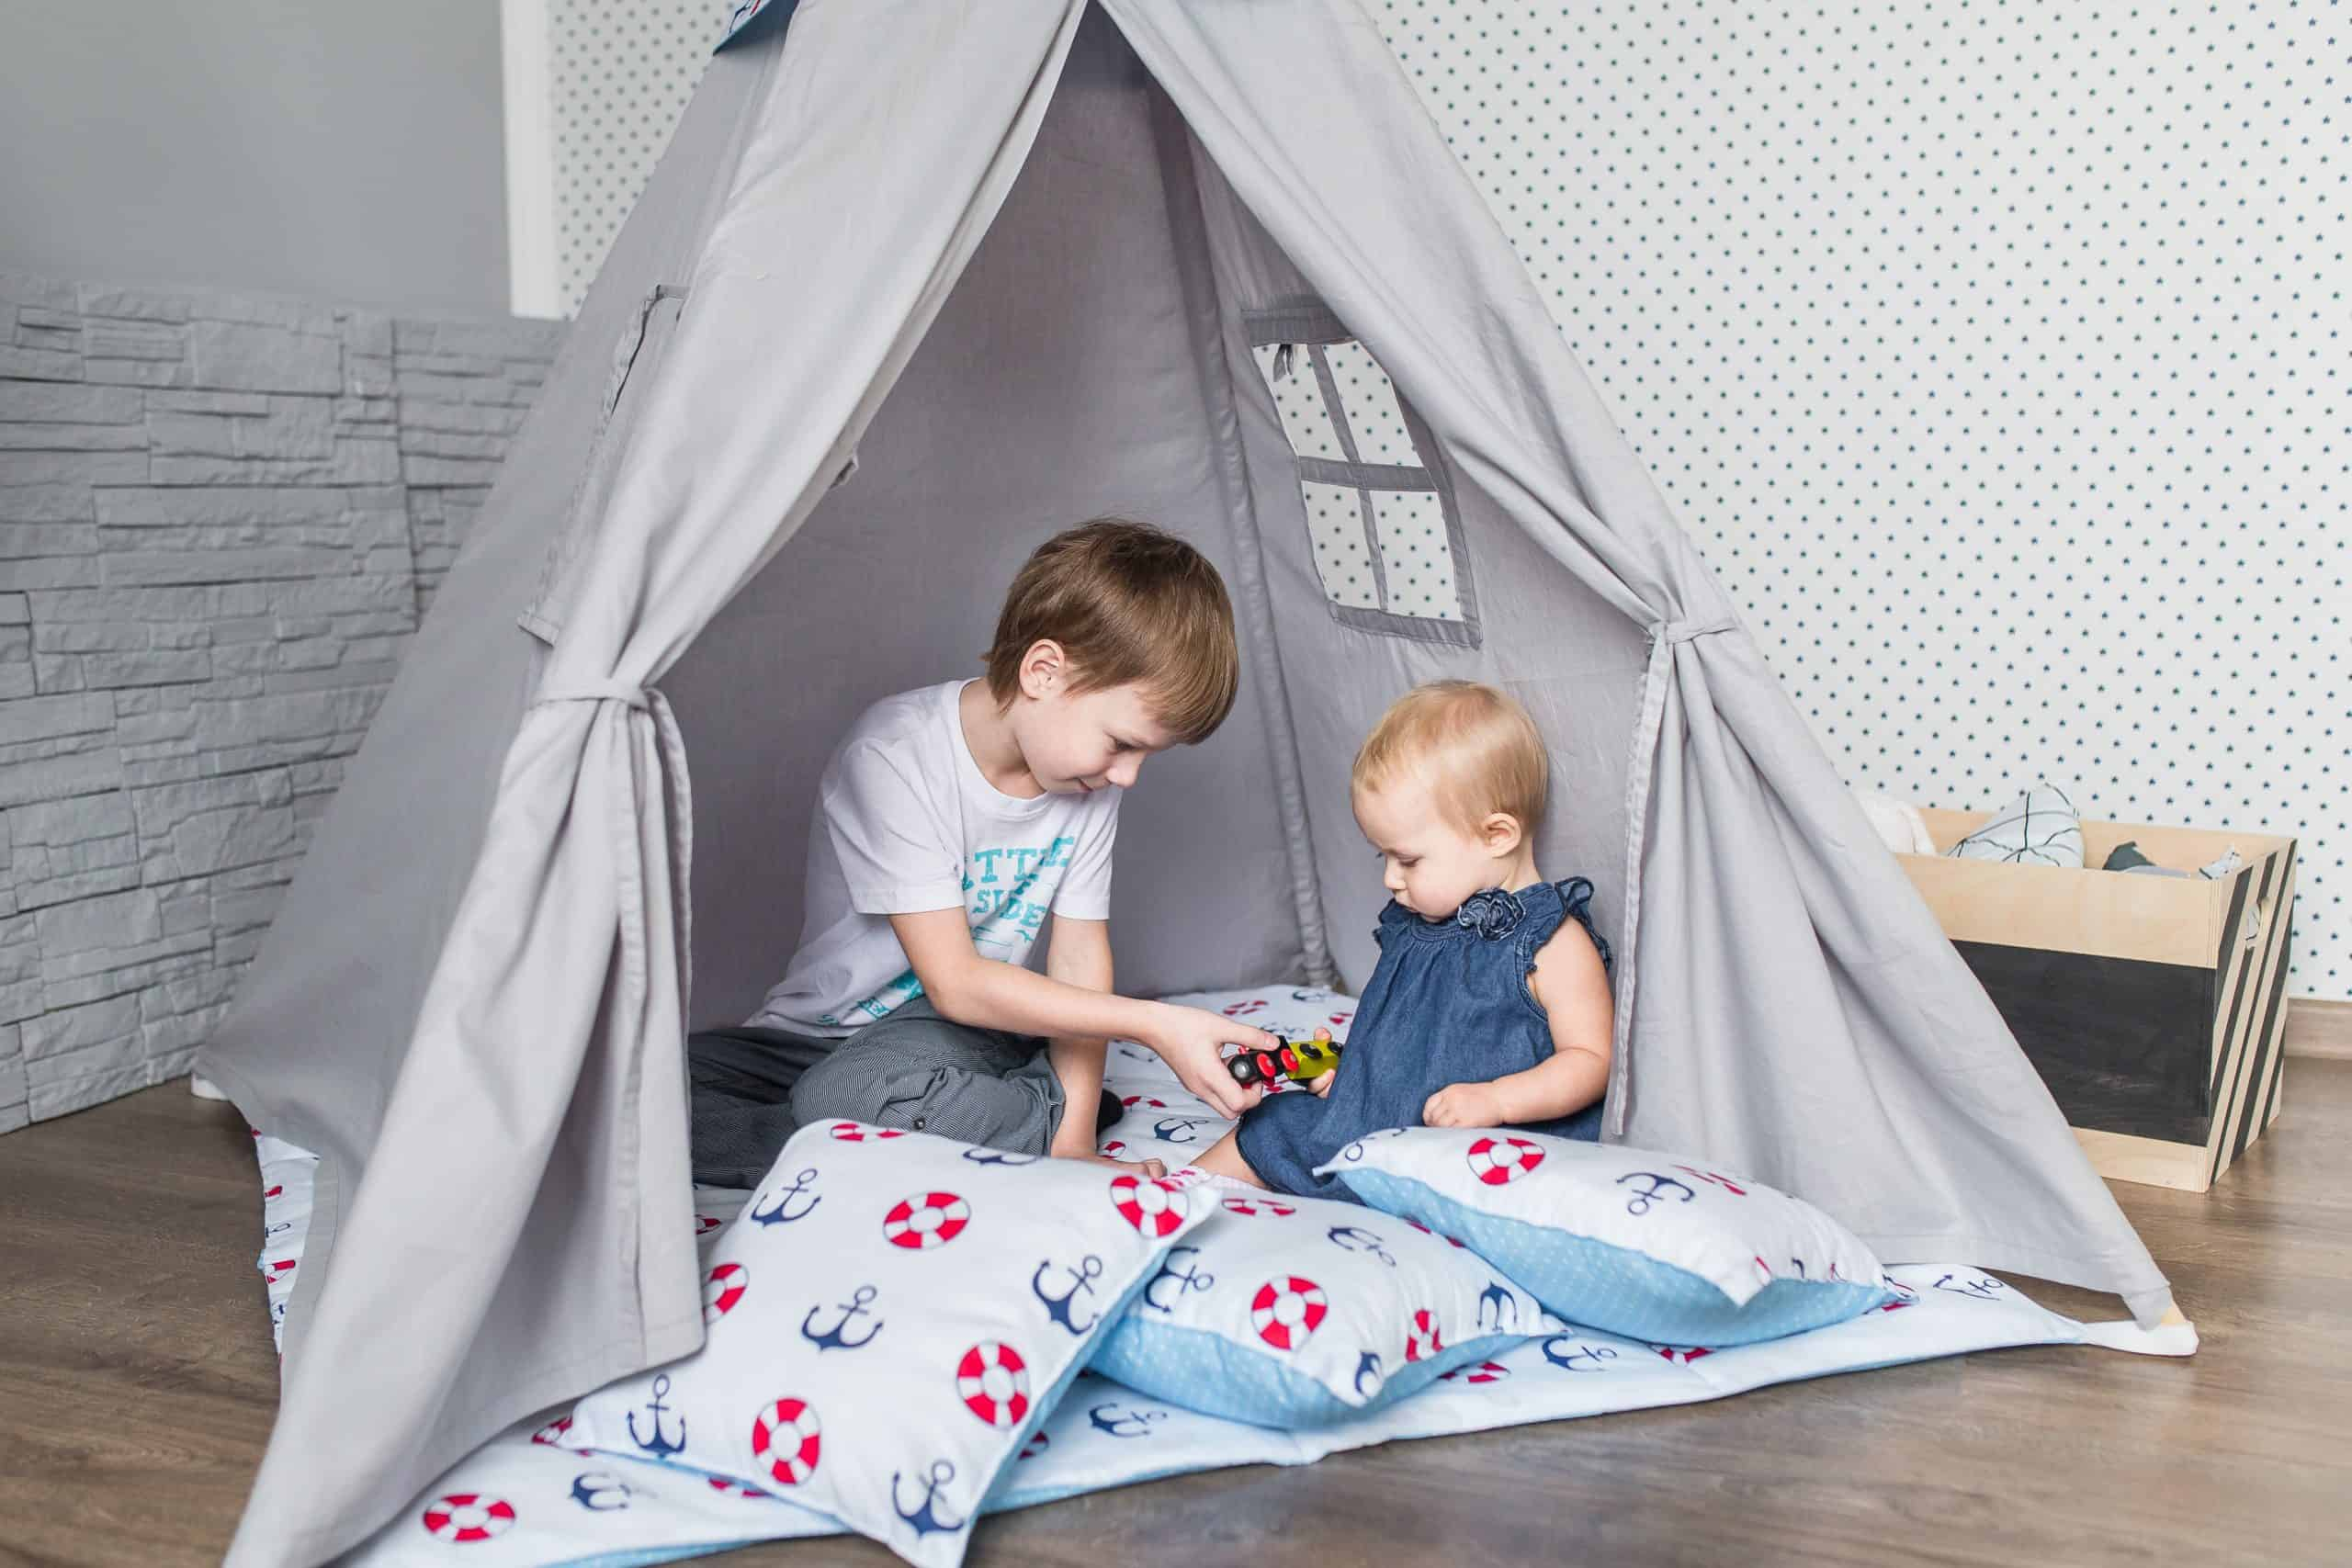 Child playing with a teepee tent